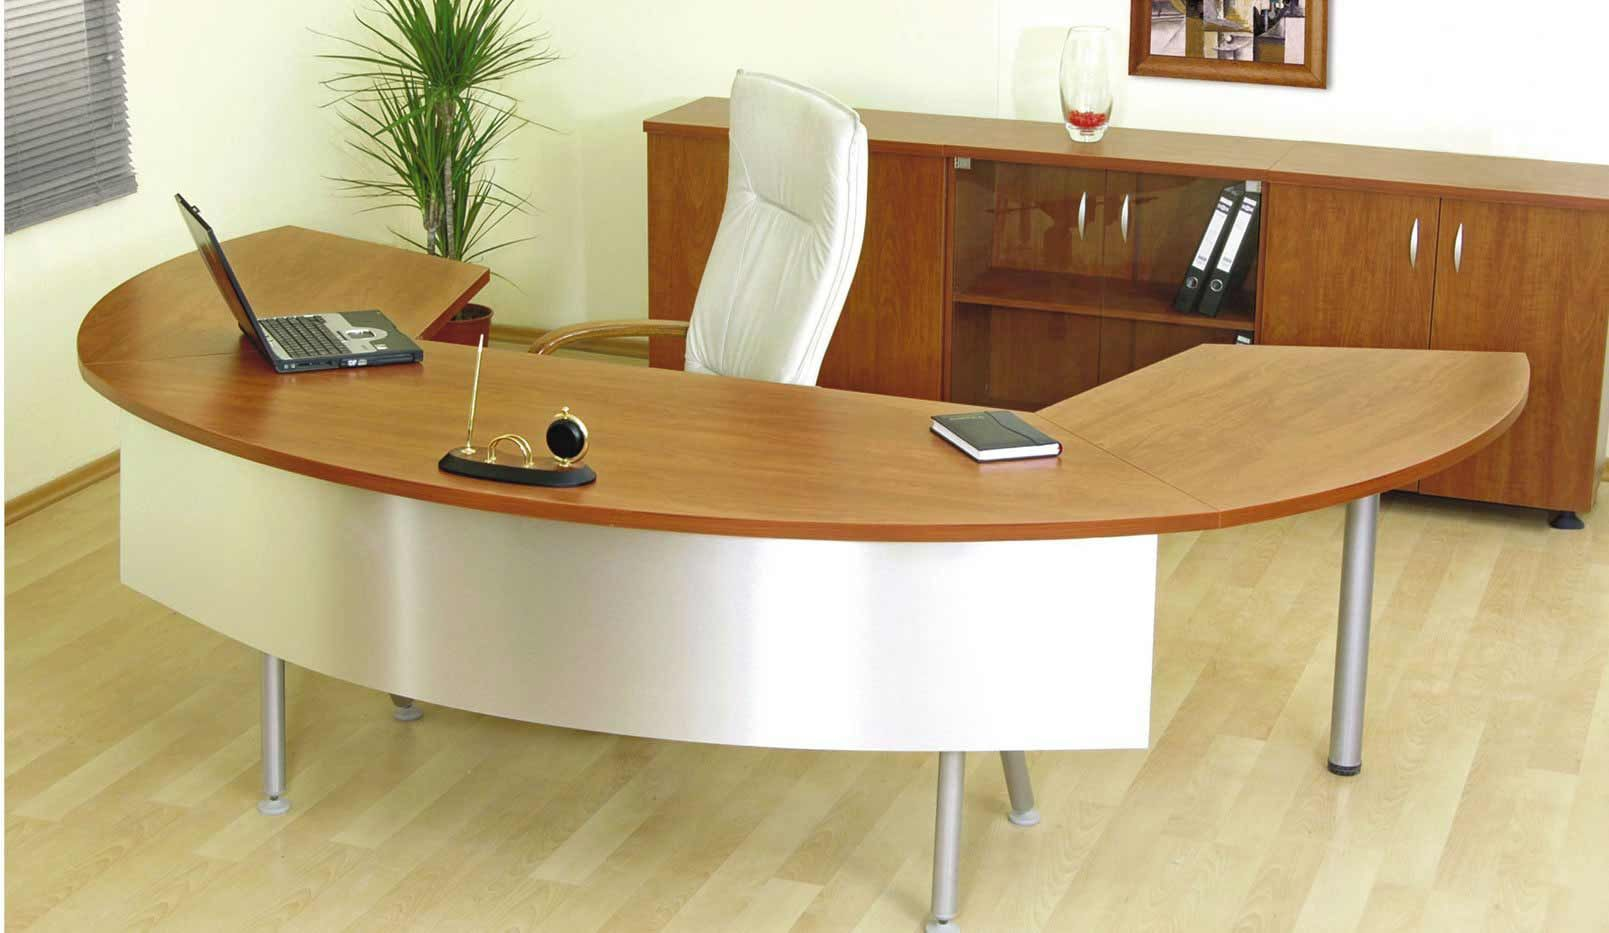 Accessories furniture awesome unique desks for home office design ideas with stylish curved - Unique office desk accessories ...